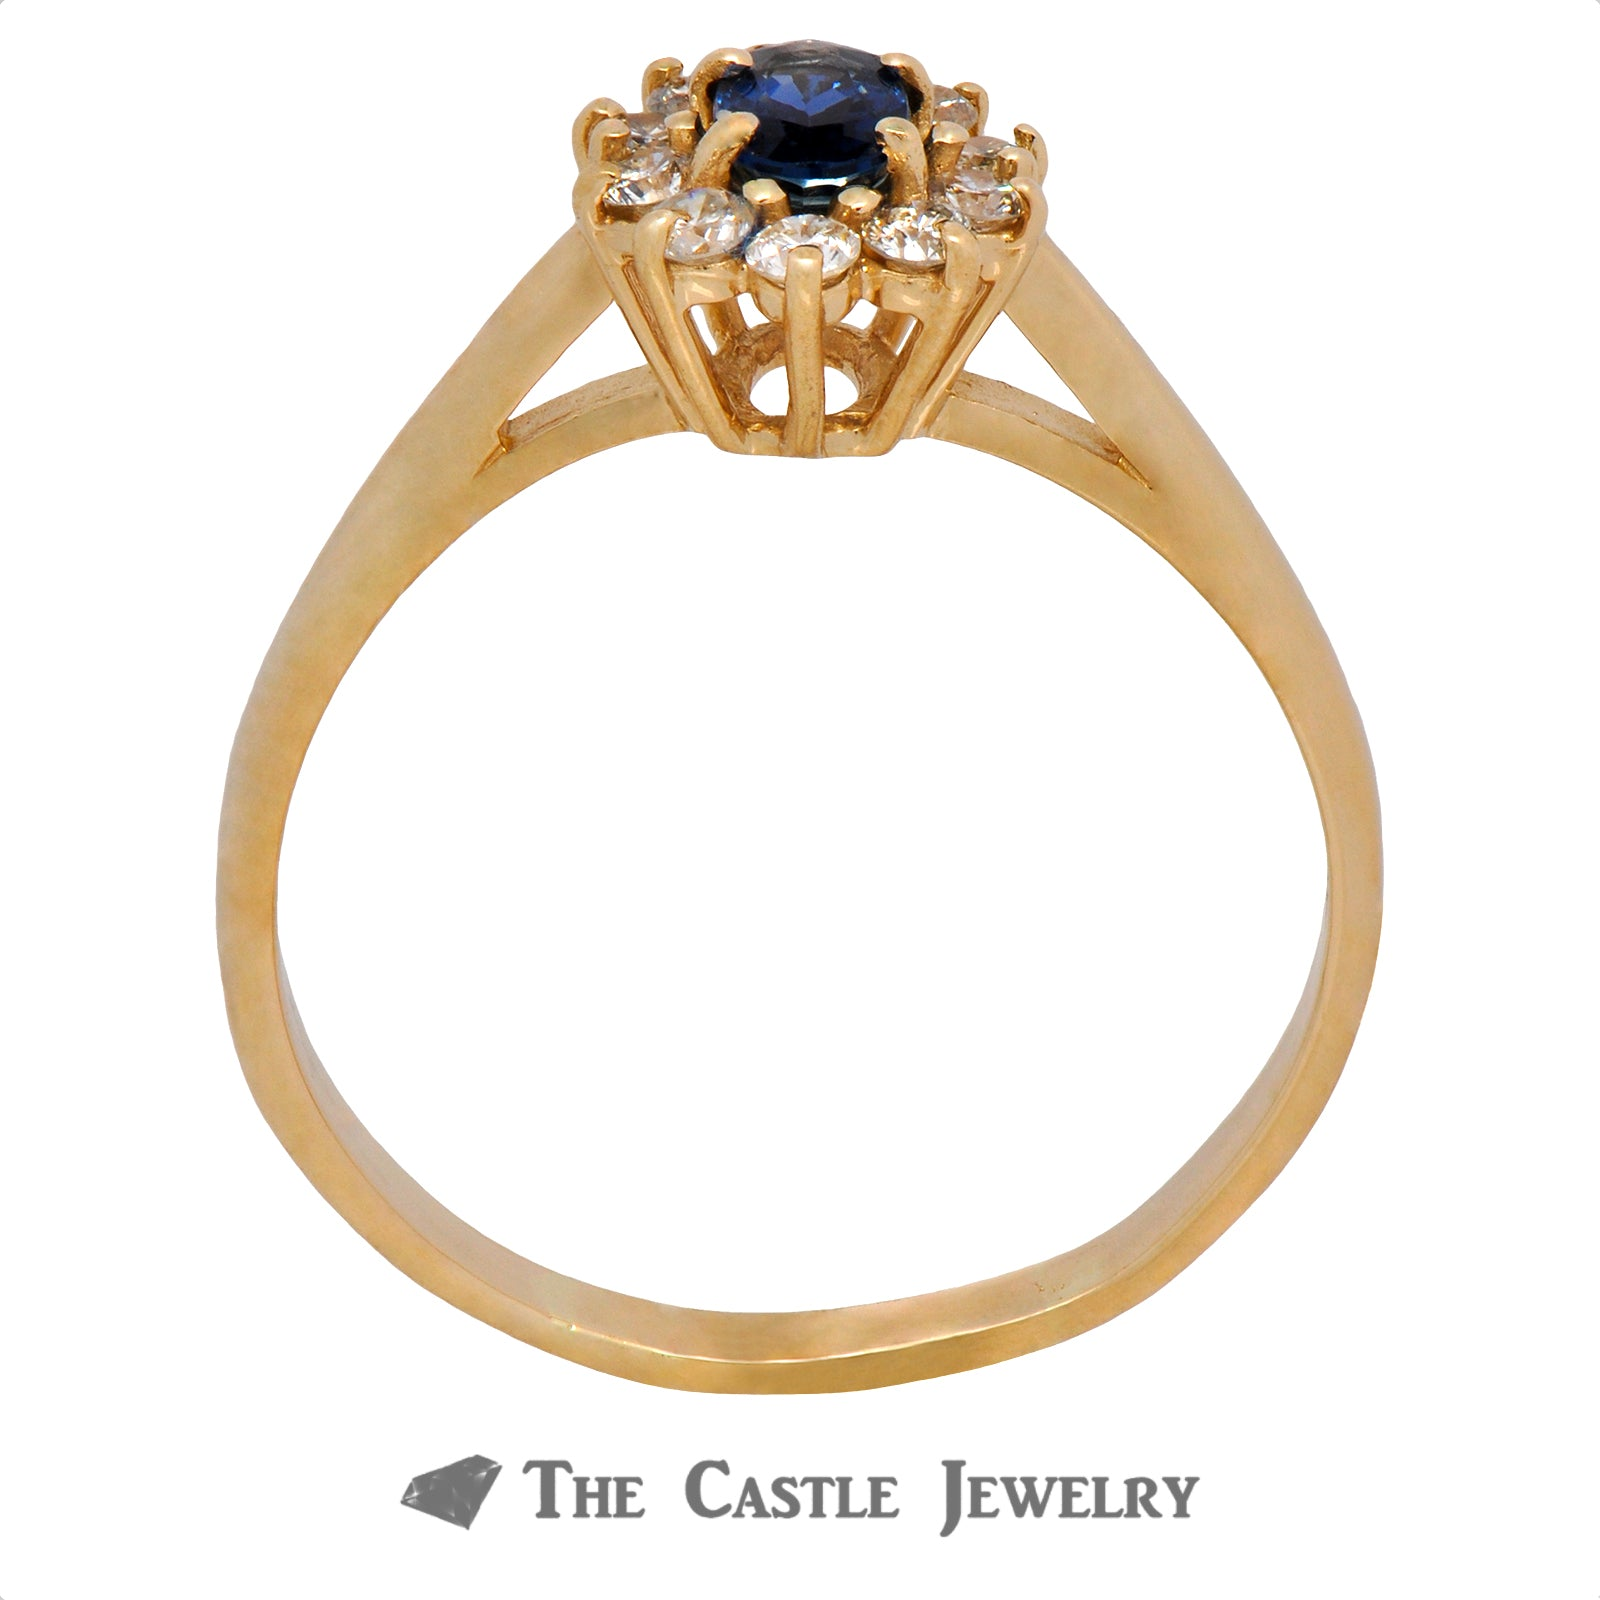 Oval Cut Sapphire Ring with Round Diamond Halo